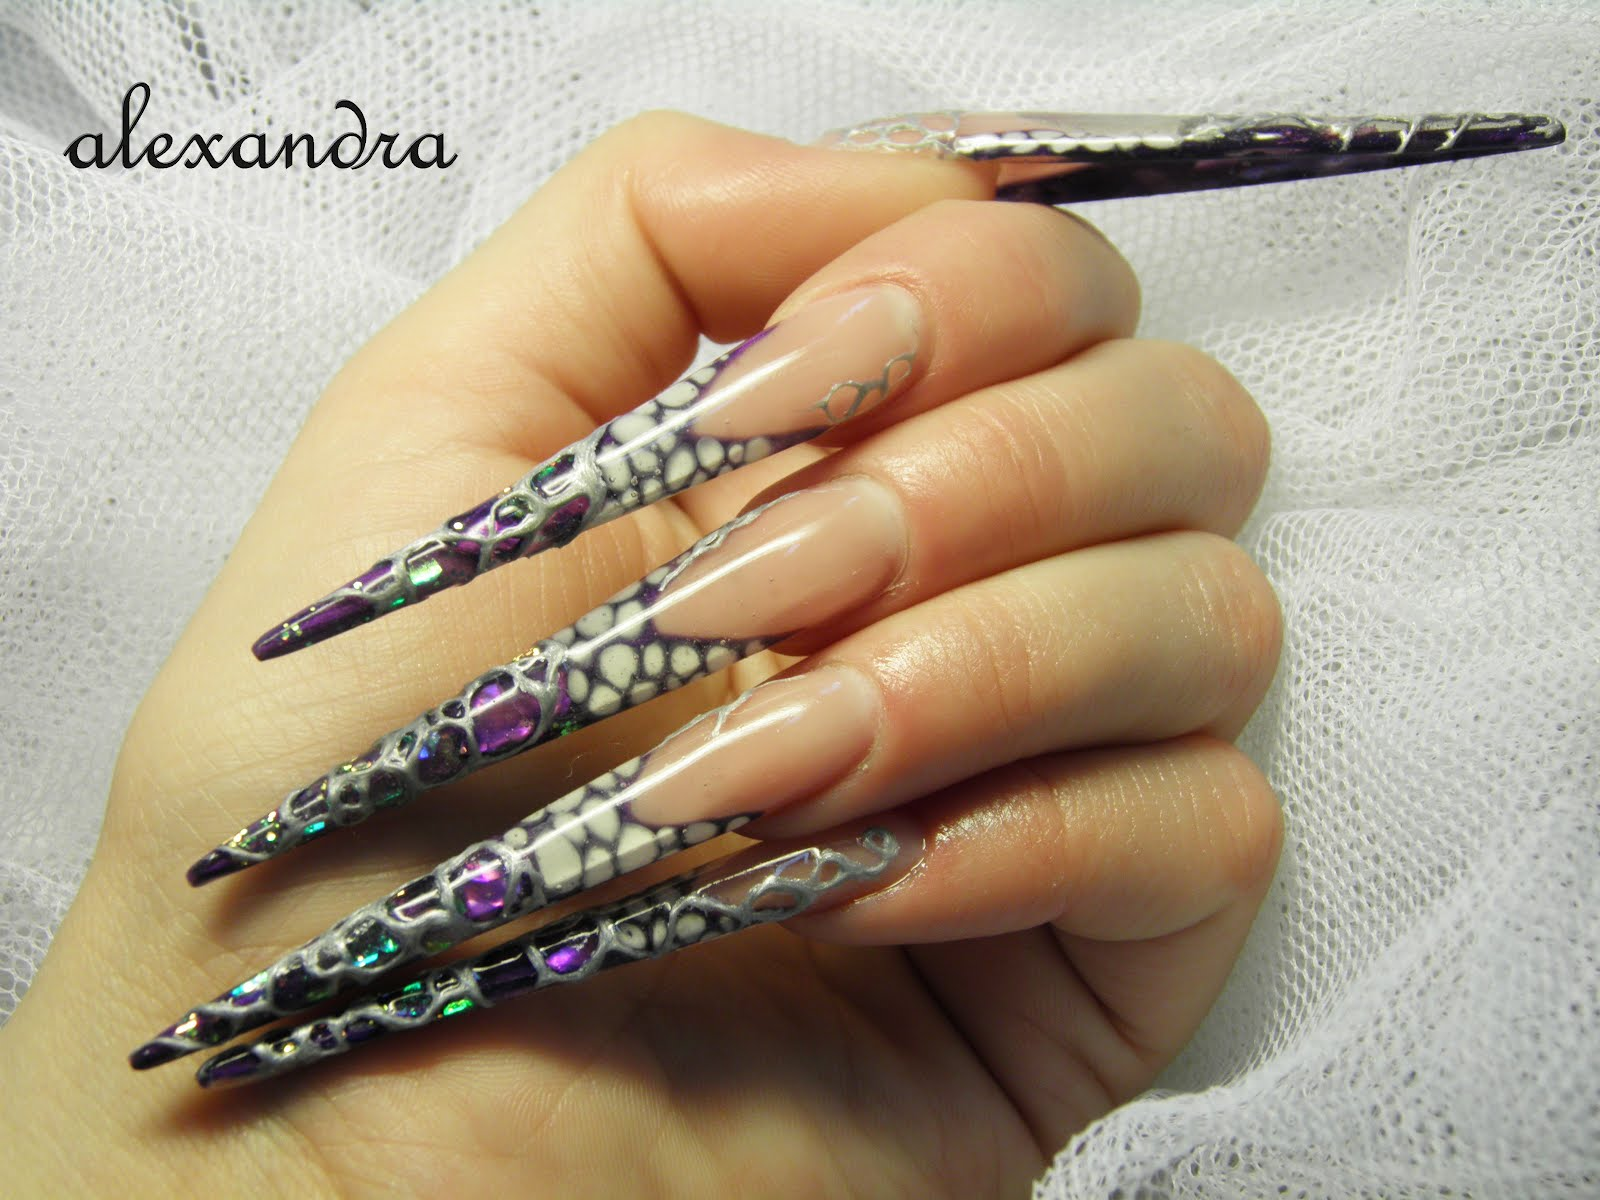 Stiletto Nail Designs 30 30 Unique Stiletto Nail Designs 2015 30 Unique Stiletto Nail Designs 2015 Stiletto Nail Designs 30